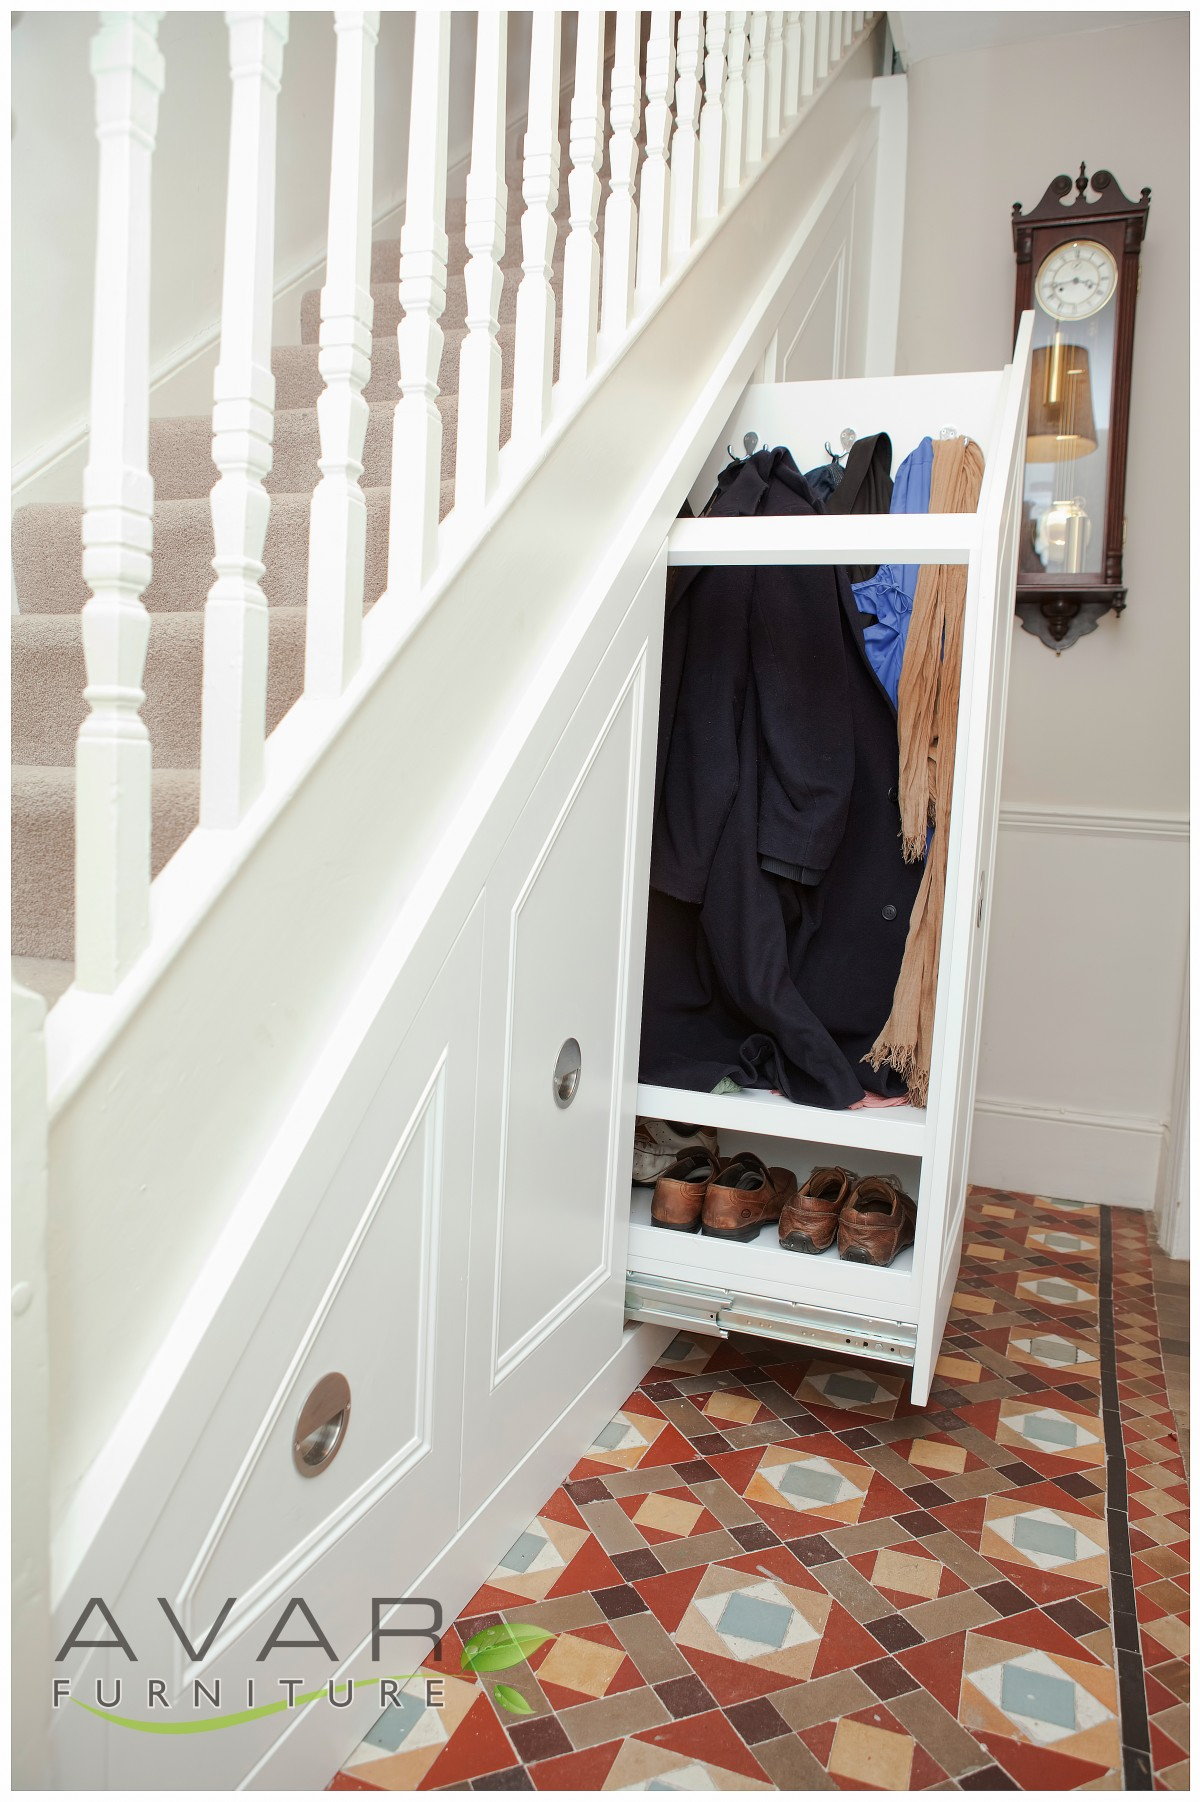 under stairs storage ideas gallery 13 north london uk avar furniture. Black Bedroom Furniture Sets. Home Design Ideas